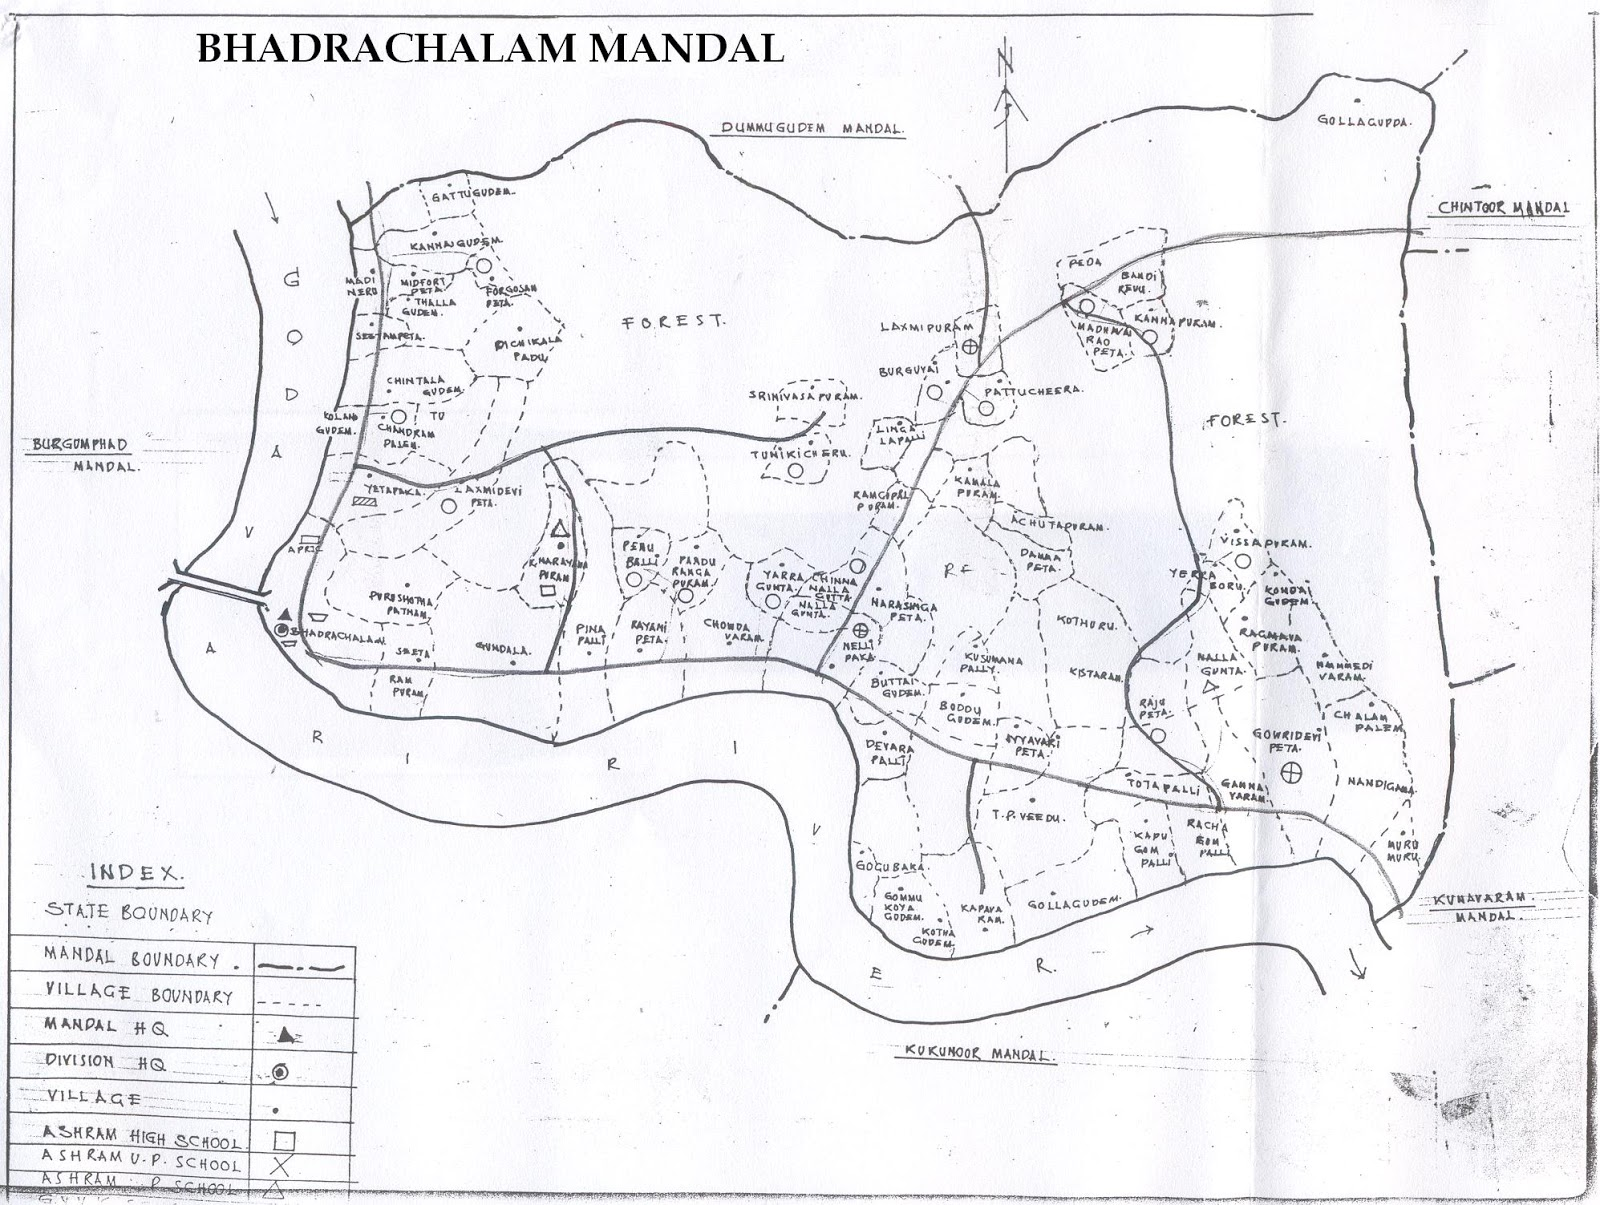 sub collector's office, bhadrachalam bhadrachalam mandal map